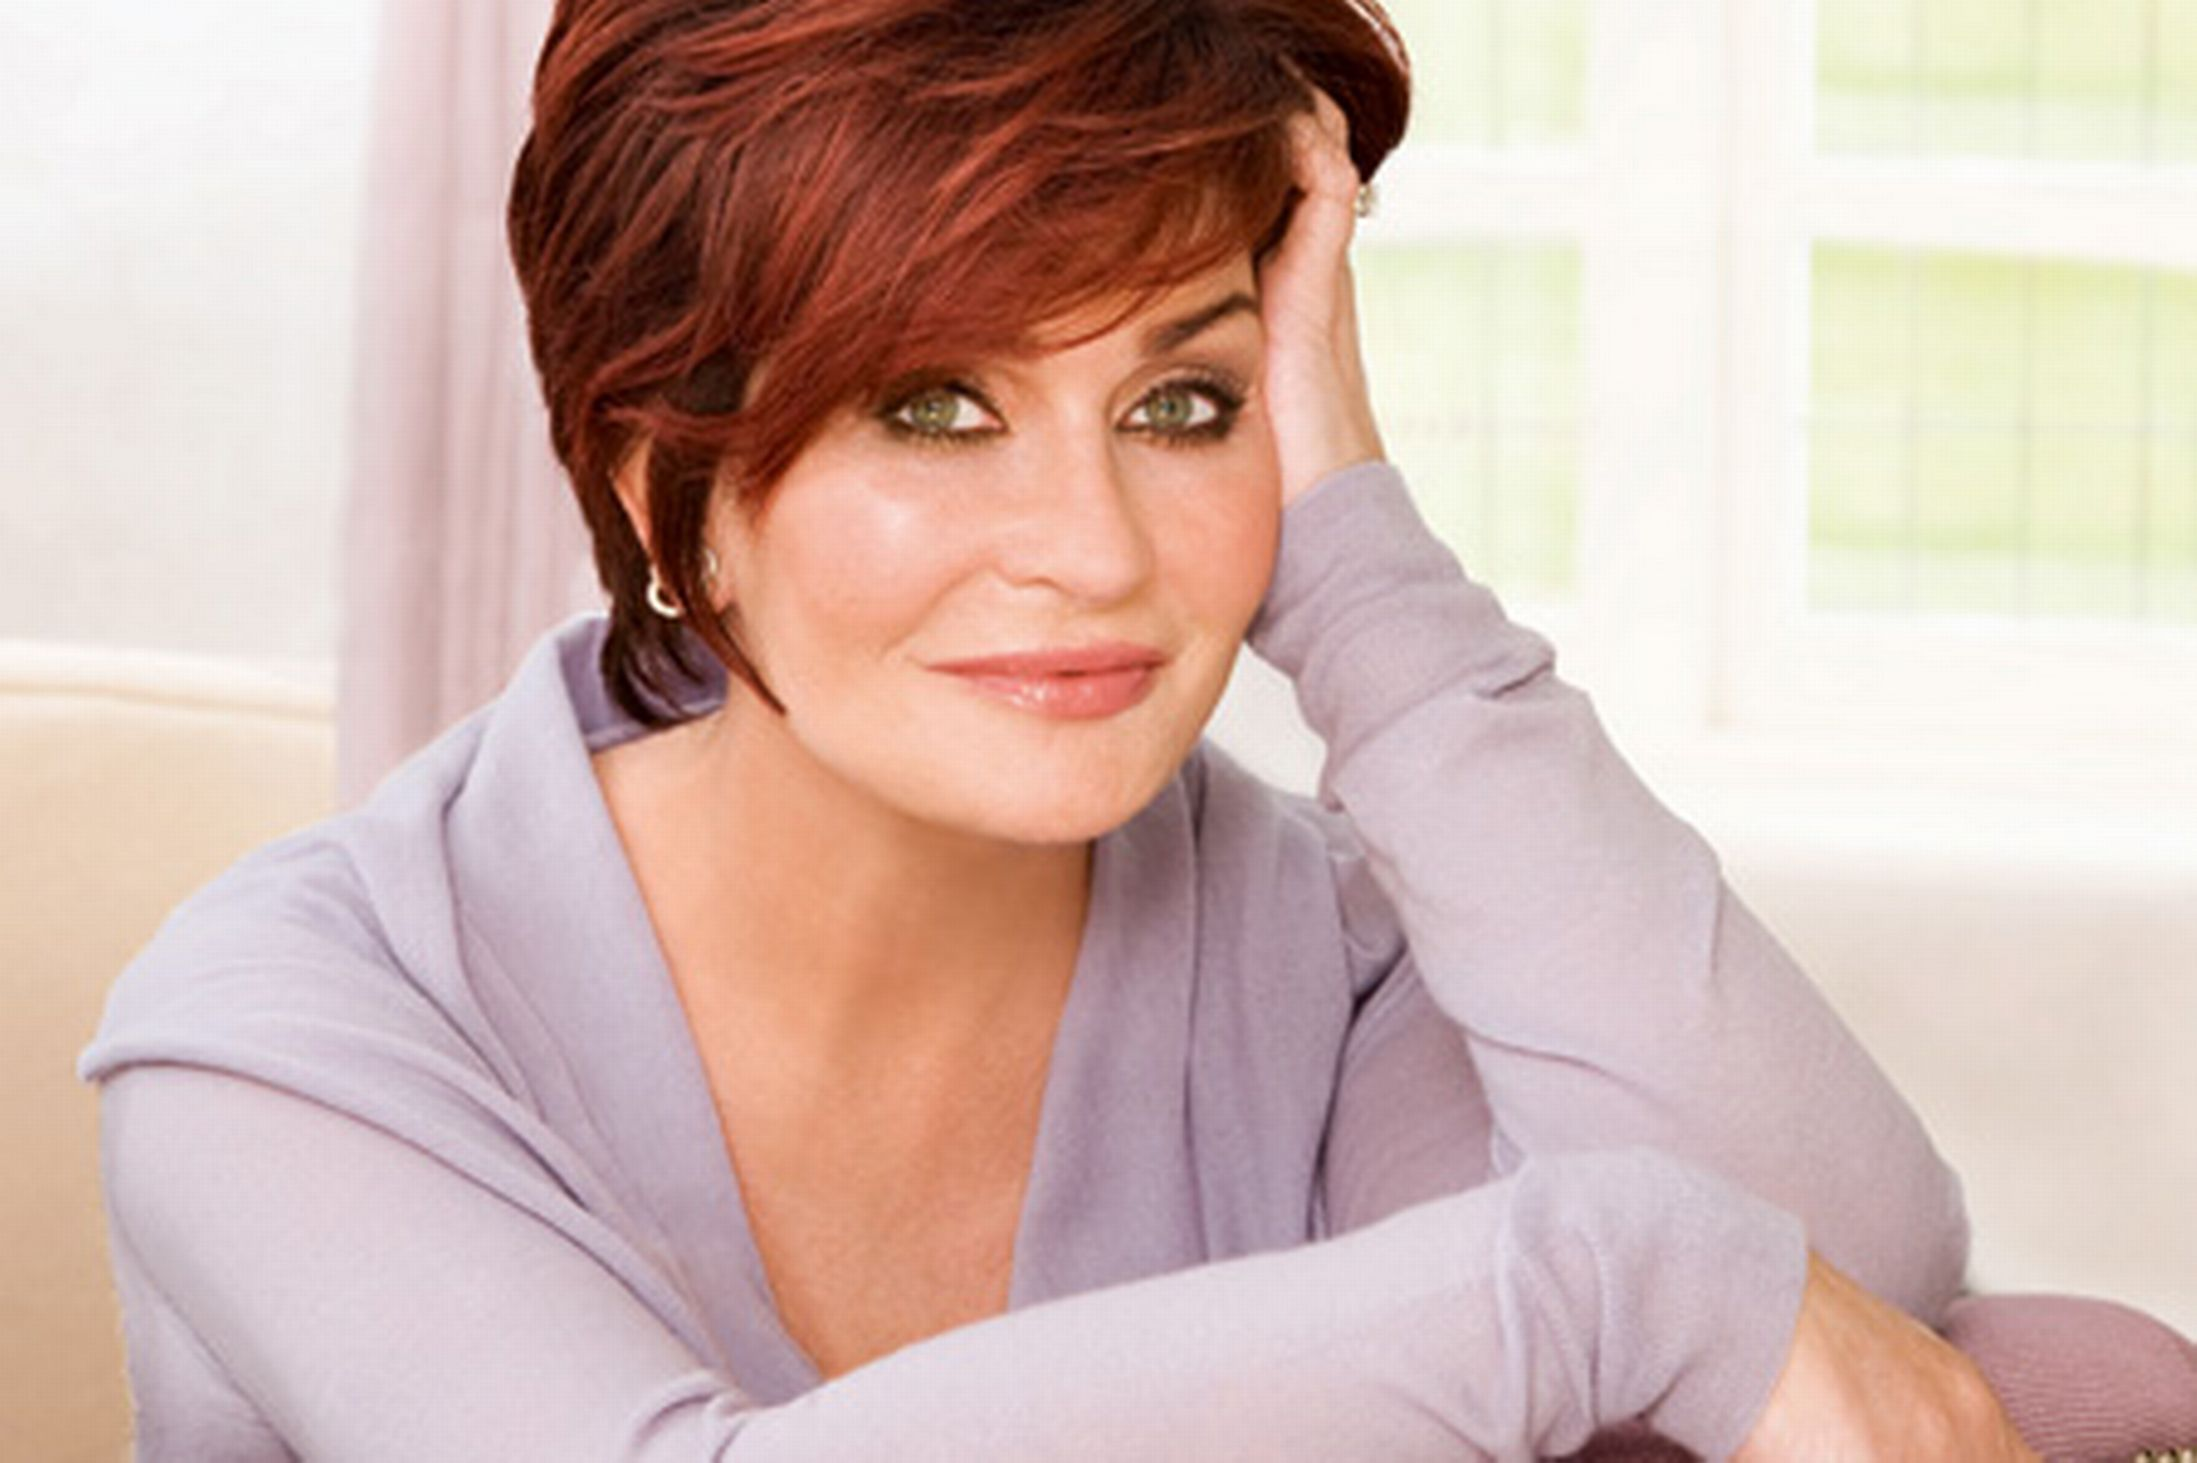 sharon osbourne 2017sharon osbourne instagram, sharon osbourne coming out, sharon osbourne young, sharon osbourne 2017, sharon osbourne 1999, sharon osbourne show, sharon osbourne height, sharon osbourne laughing, sharon osbourne travis fimmel, sharon osbourne can't stop laughing, sharon osbourne tooth falls out, sharon osbourne father, sharon osbourne books, sharon osbourne ham, sharon osbourne teeth, sharon osbourne wdw, sharon osbourne peta, sharon osbourne wiki, sharon osbourne 2000, sharon osbourne 1970